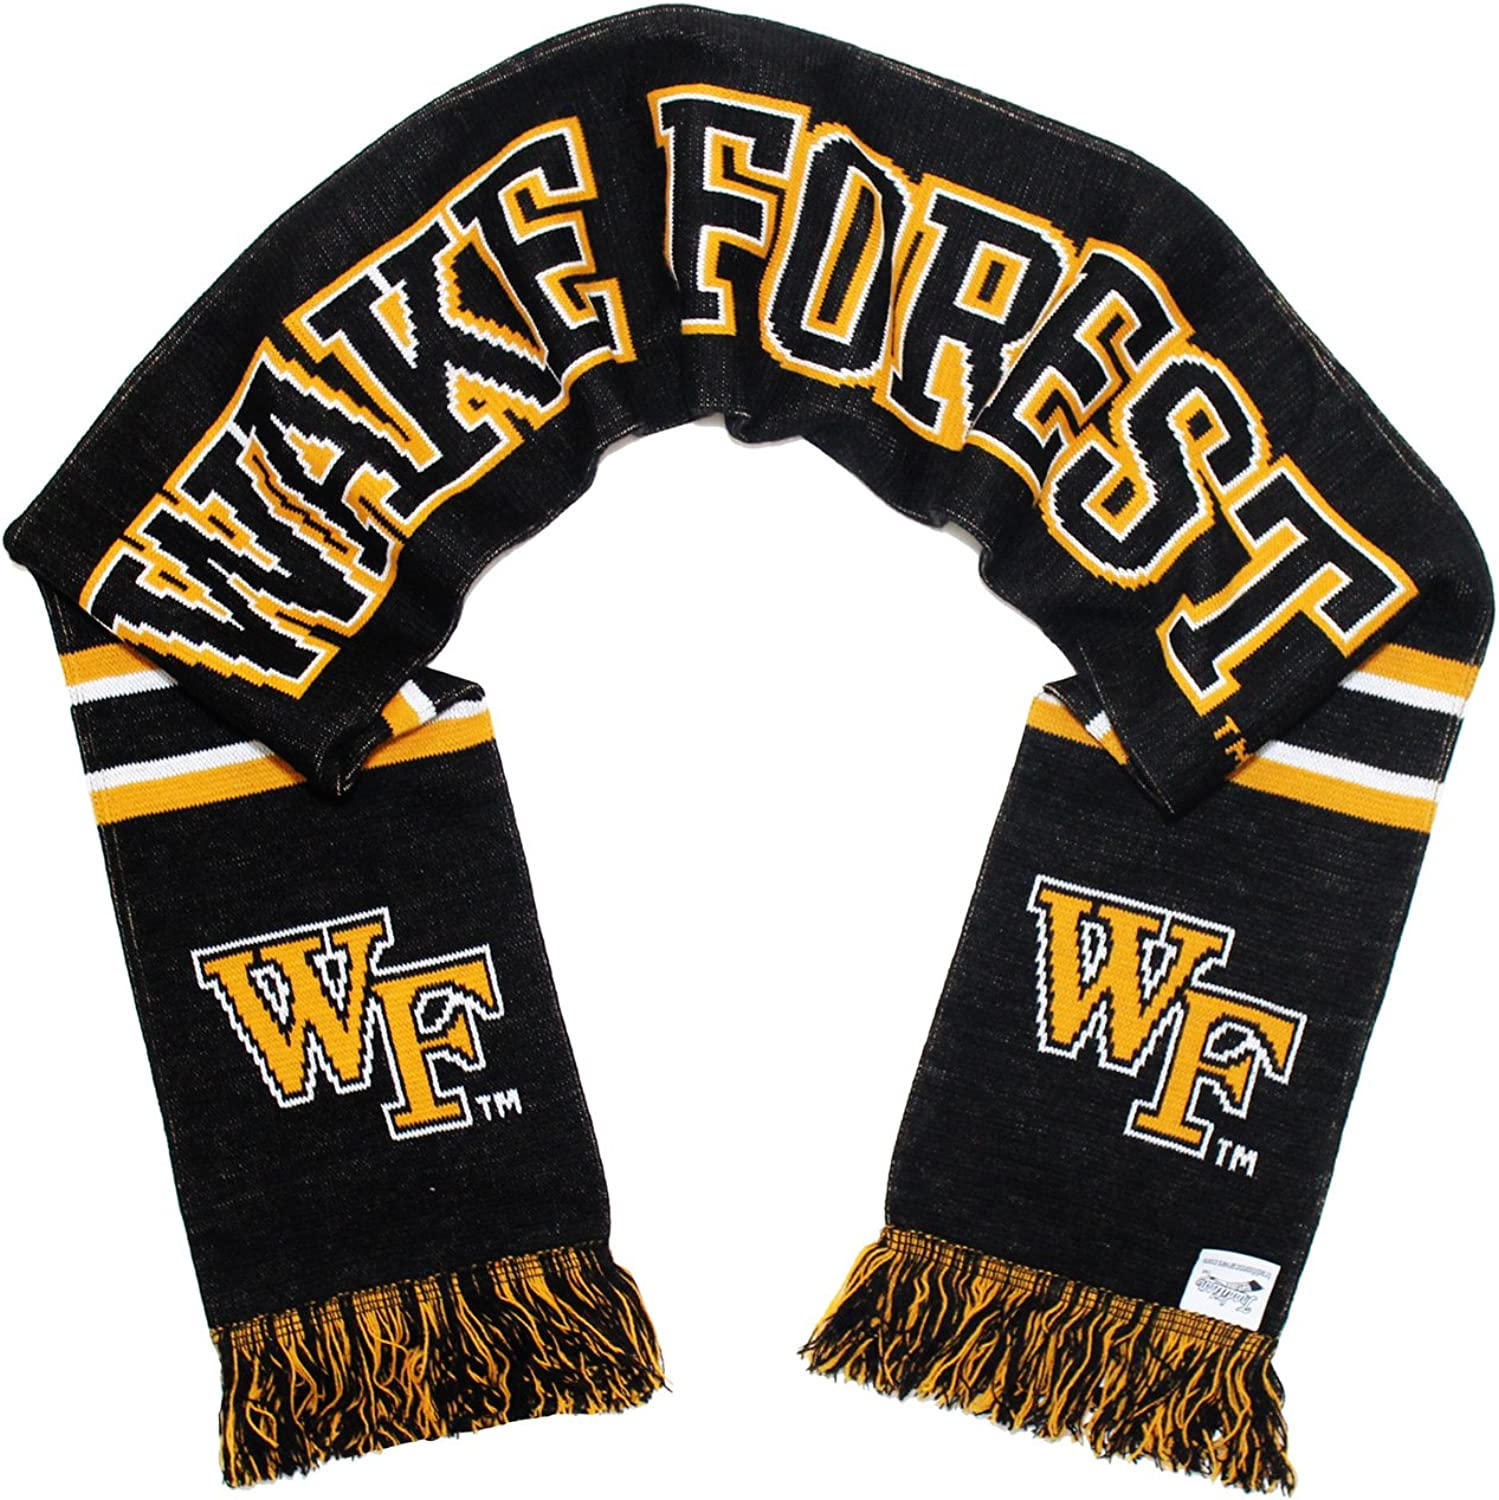 Tradition Scarves Wake Forest Scarf - WFU Demon Deacons Classic Knitted